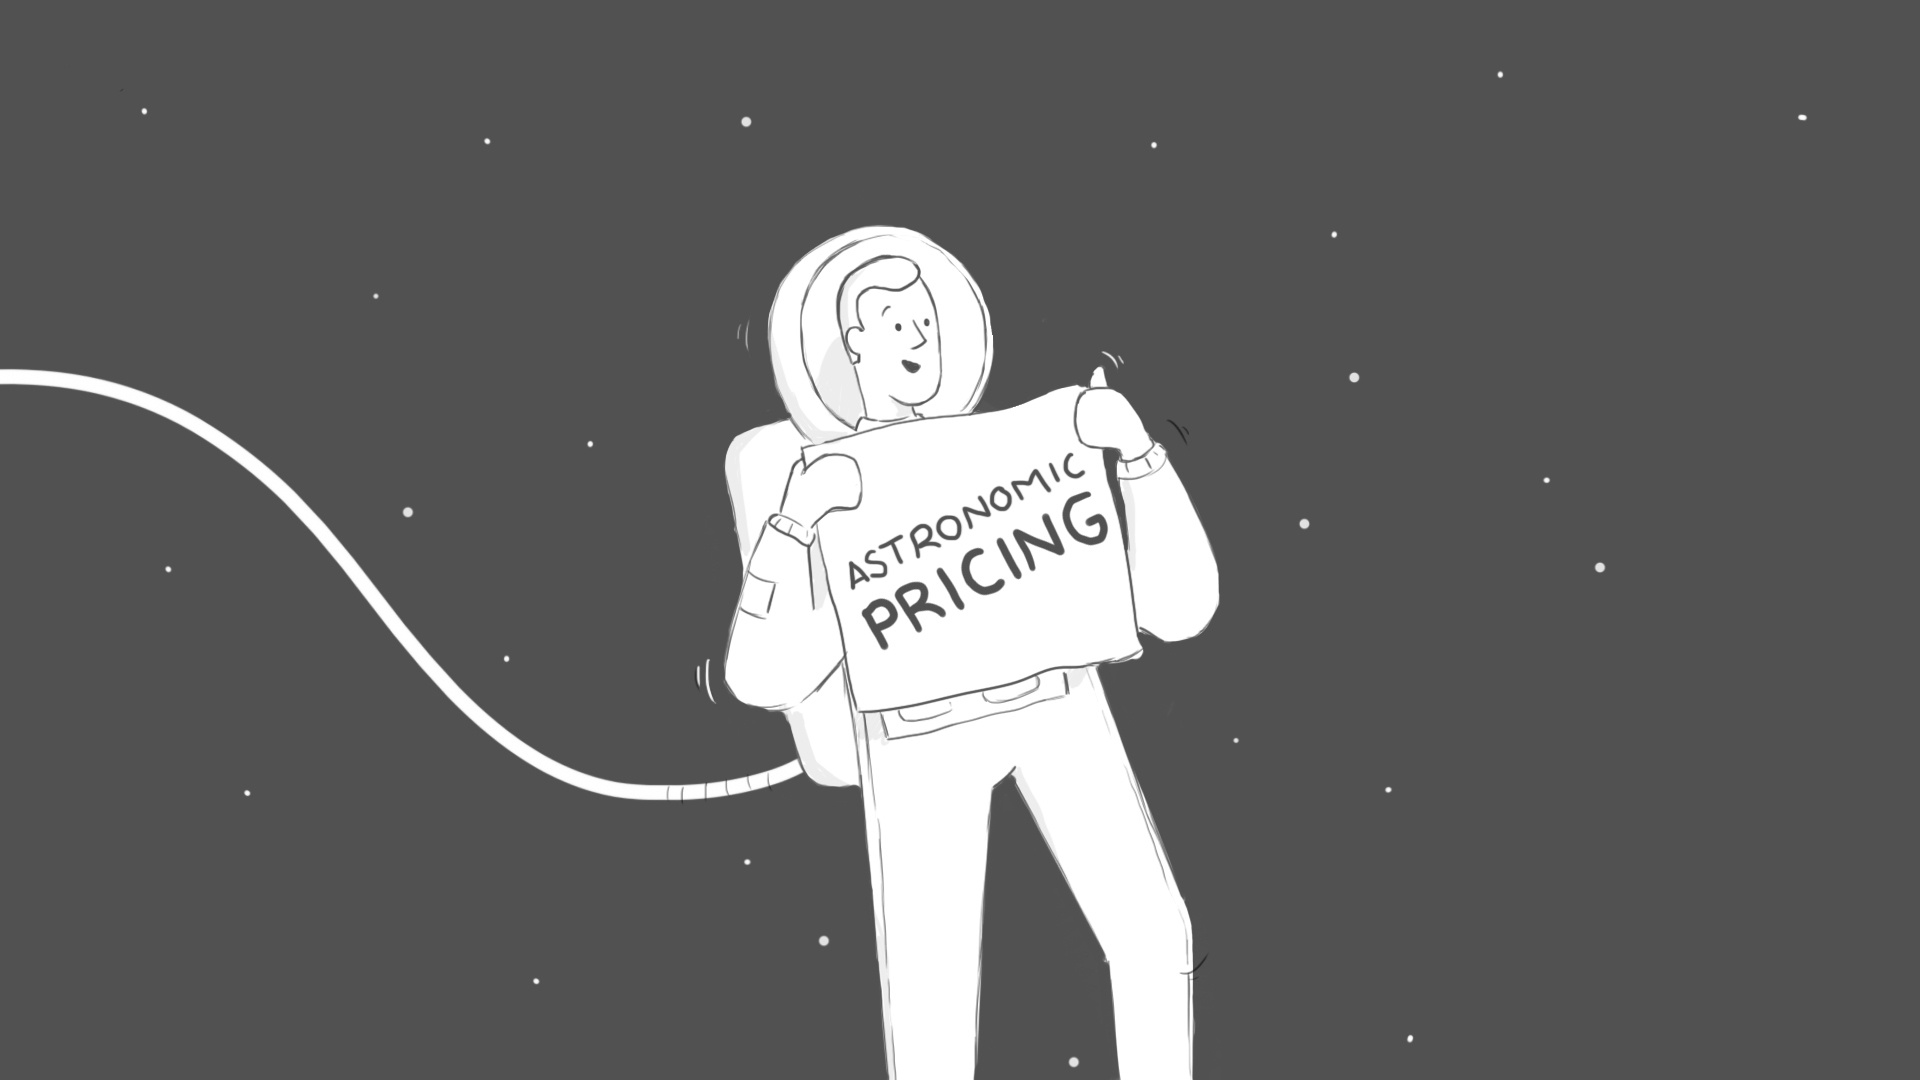 Part of a storyboard made for Parcela Já with astronaut and a Astronomic pricing poster